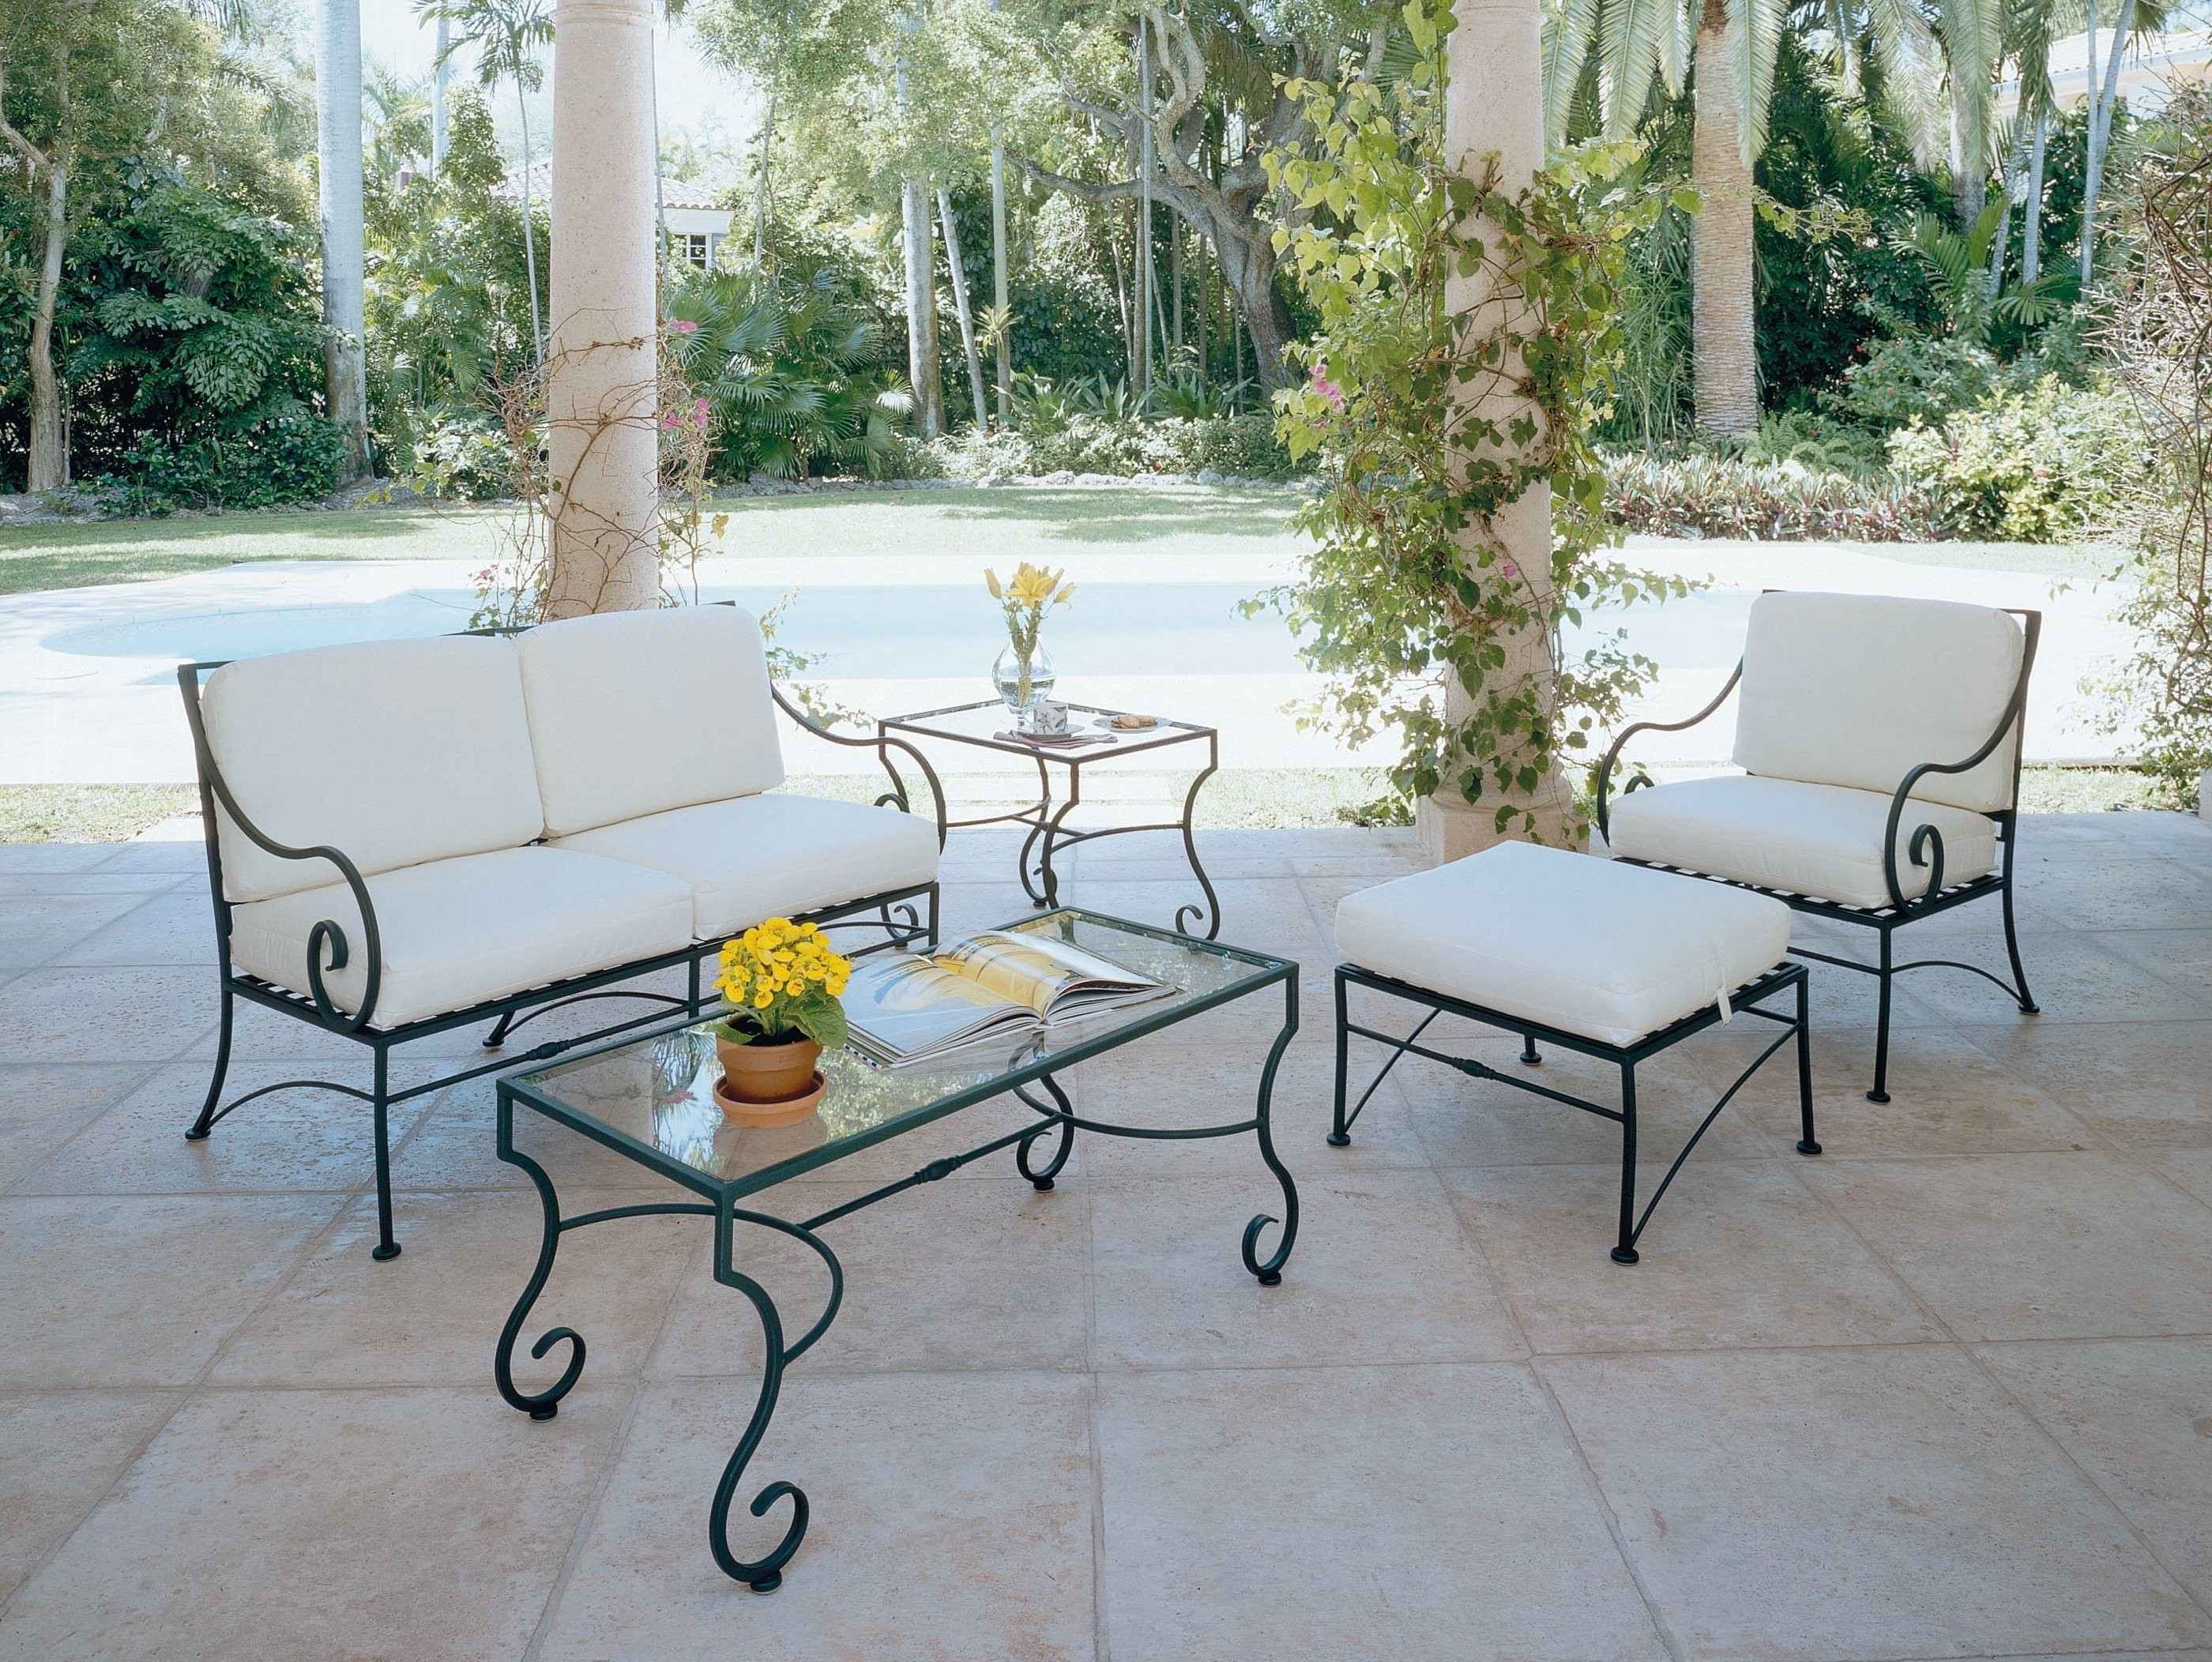 Widely Used Wrought Iron Patio Conversation Sets With Patio : Rot Iron Patio Furniture Wrought Refinishing Outdoor Cast (View 11 of 15)